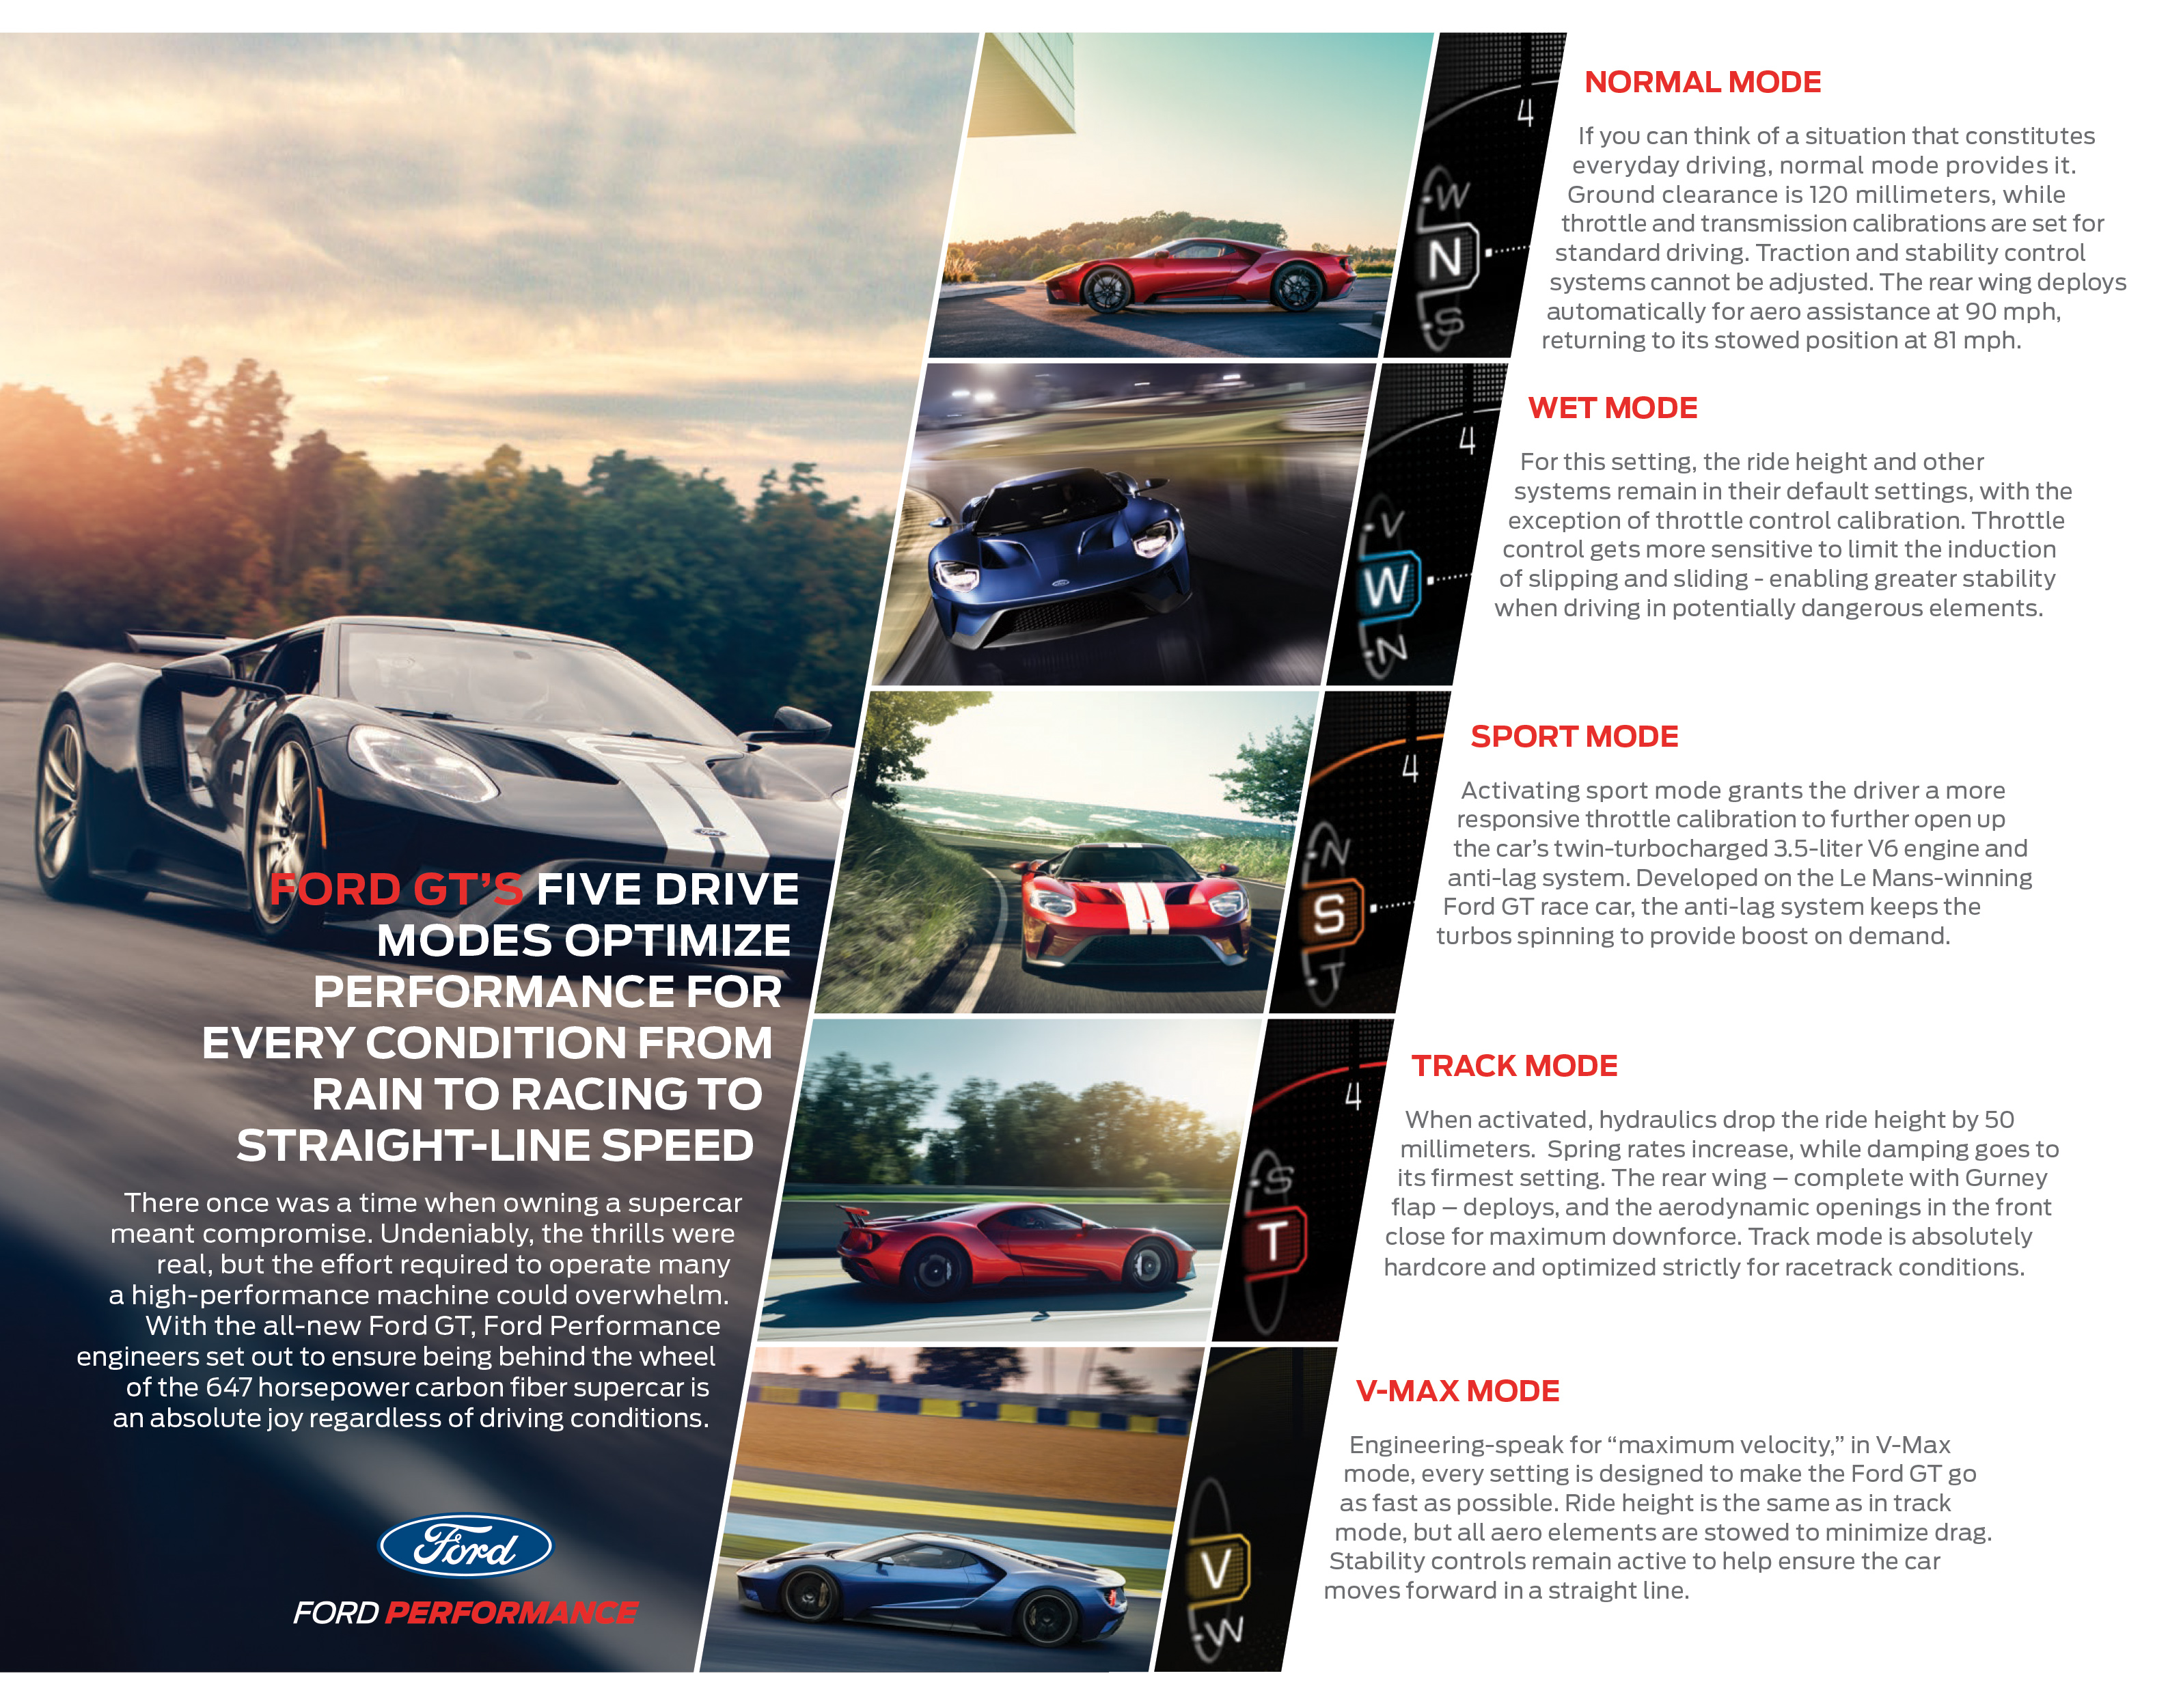 Will The Ford Gts Drive Modes Stop Owners From Going Full Mustang Top Speed